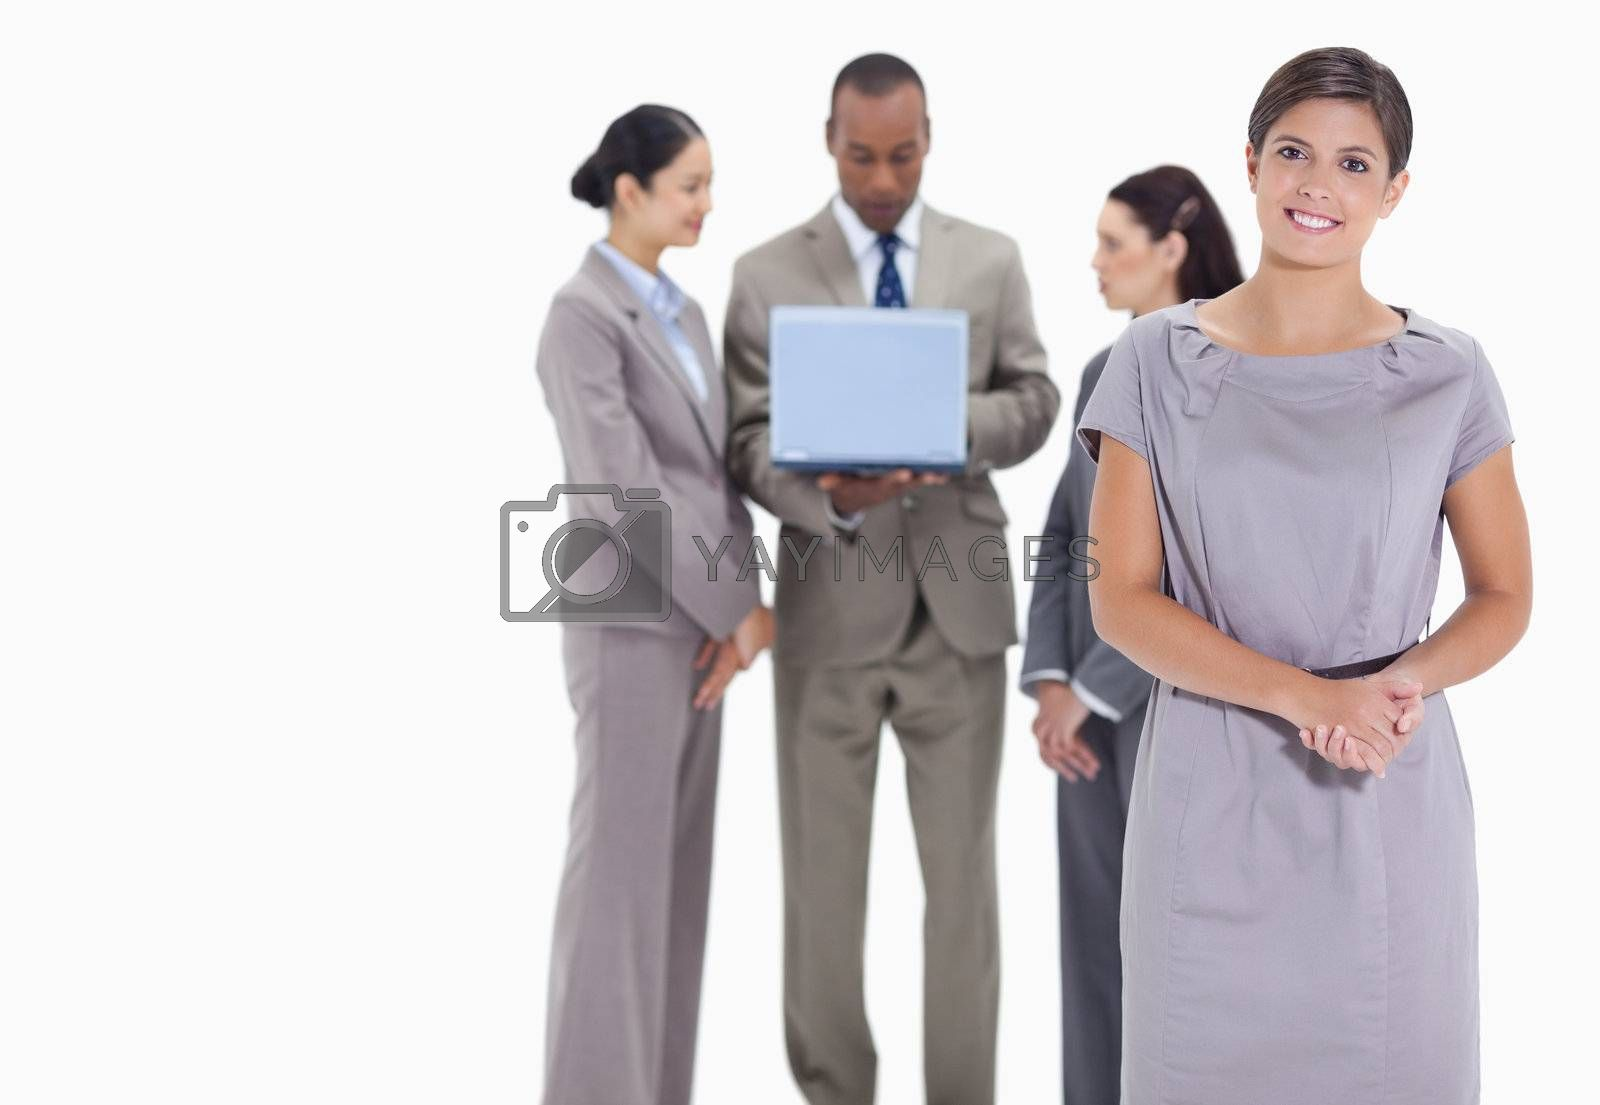 Woman welcoming and holding her hands and co-workers talking with a laptop in the background